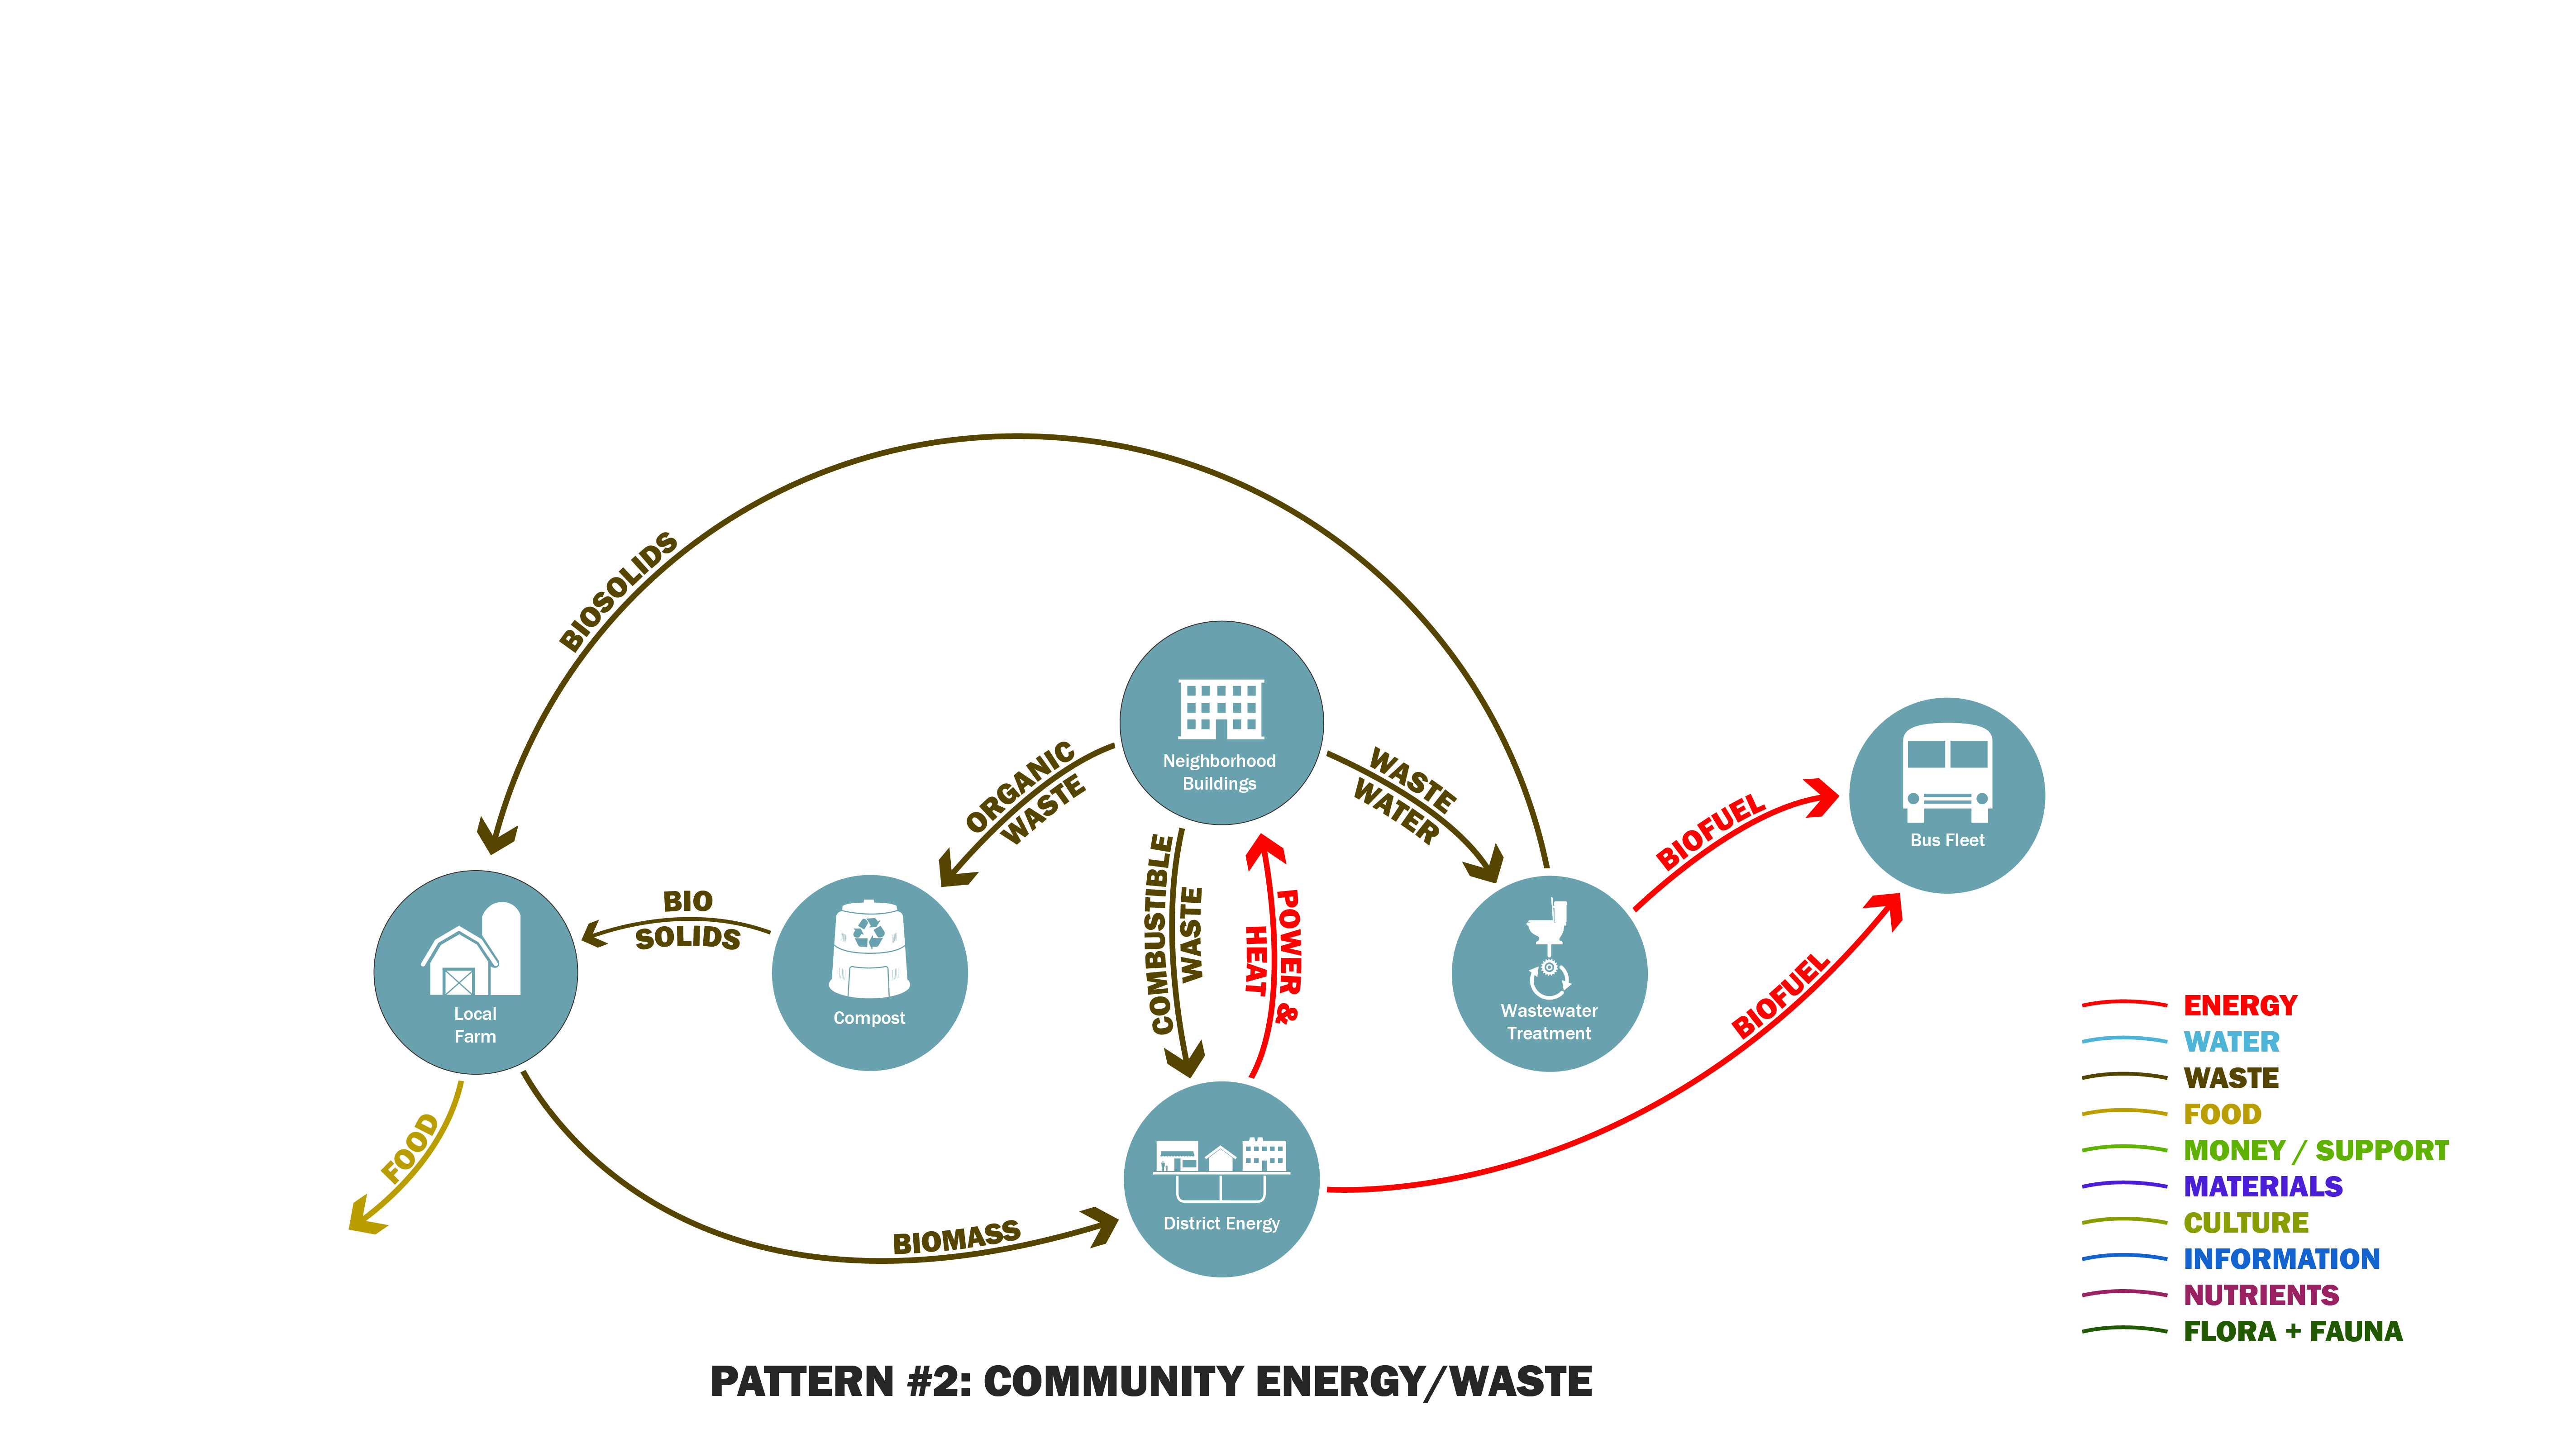 dnabank_sampleflows_2-communityenergywaste